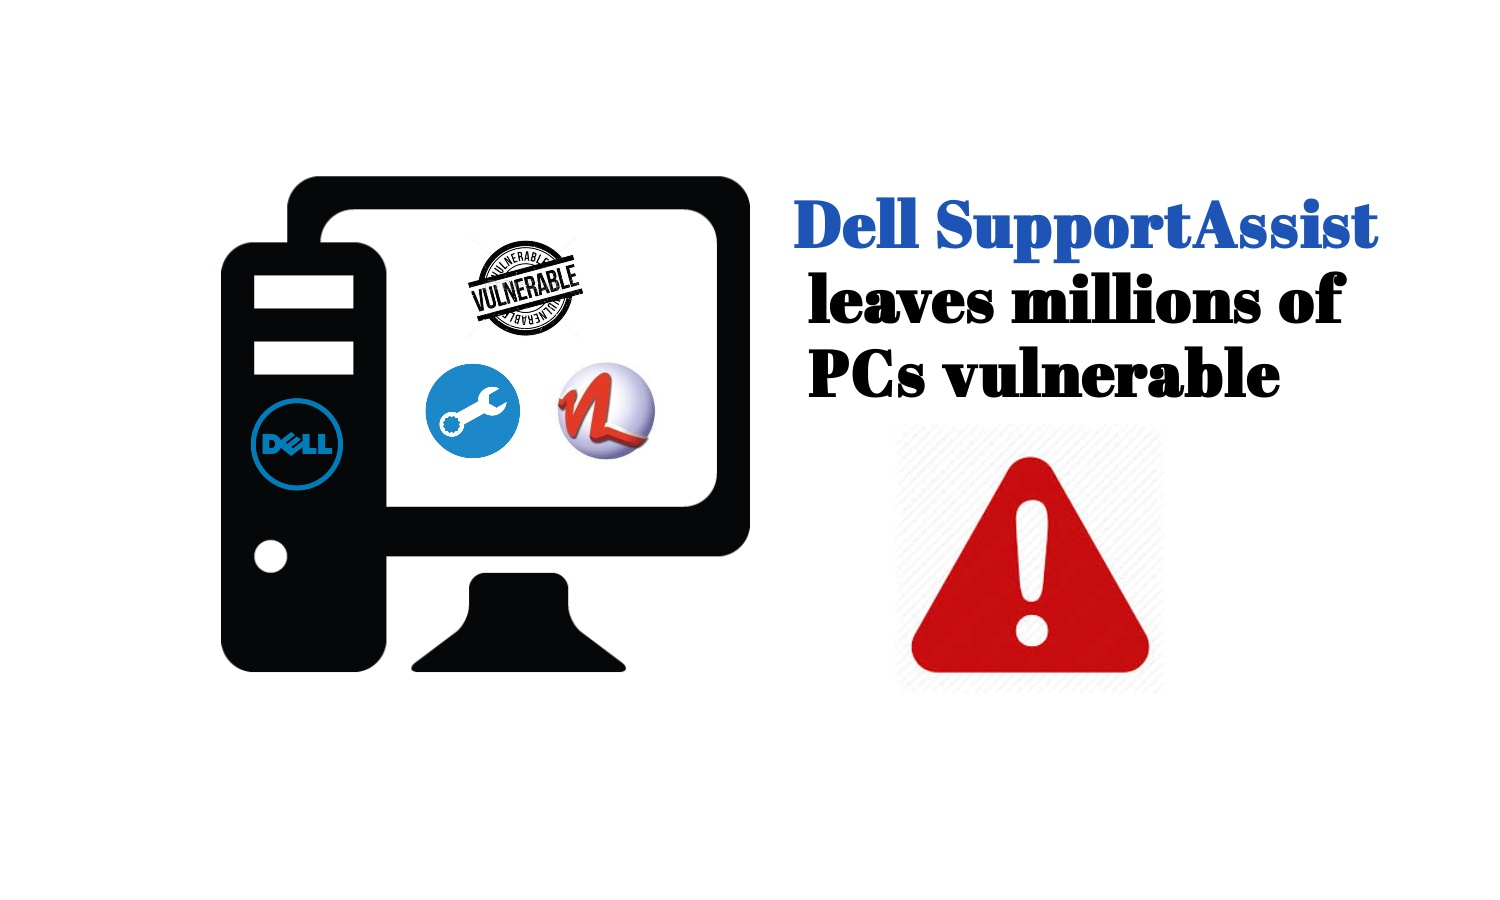 Dell's SupportAssist assists Attackers